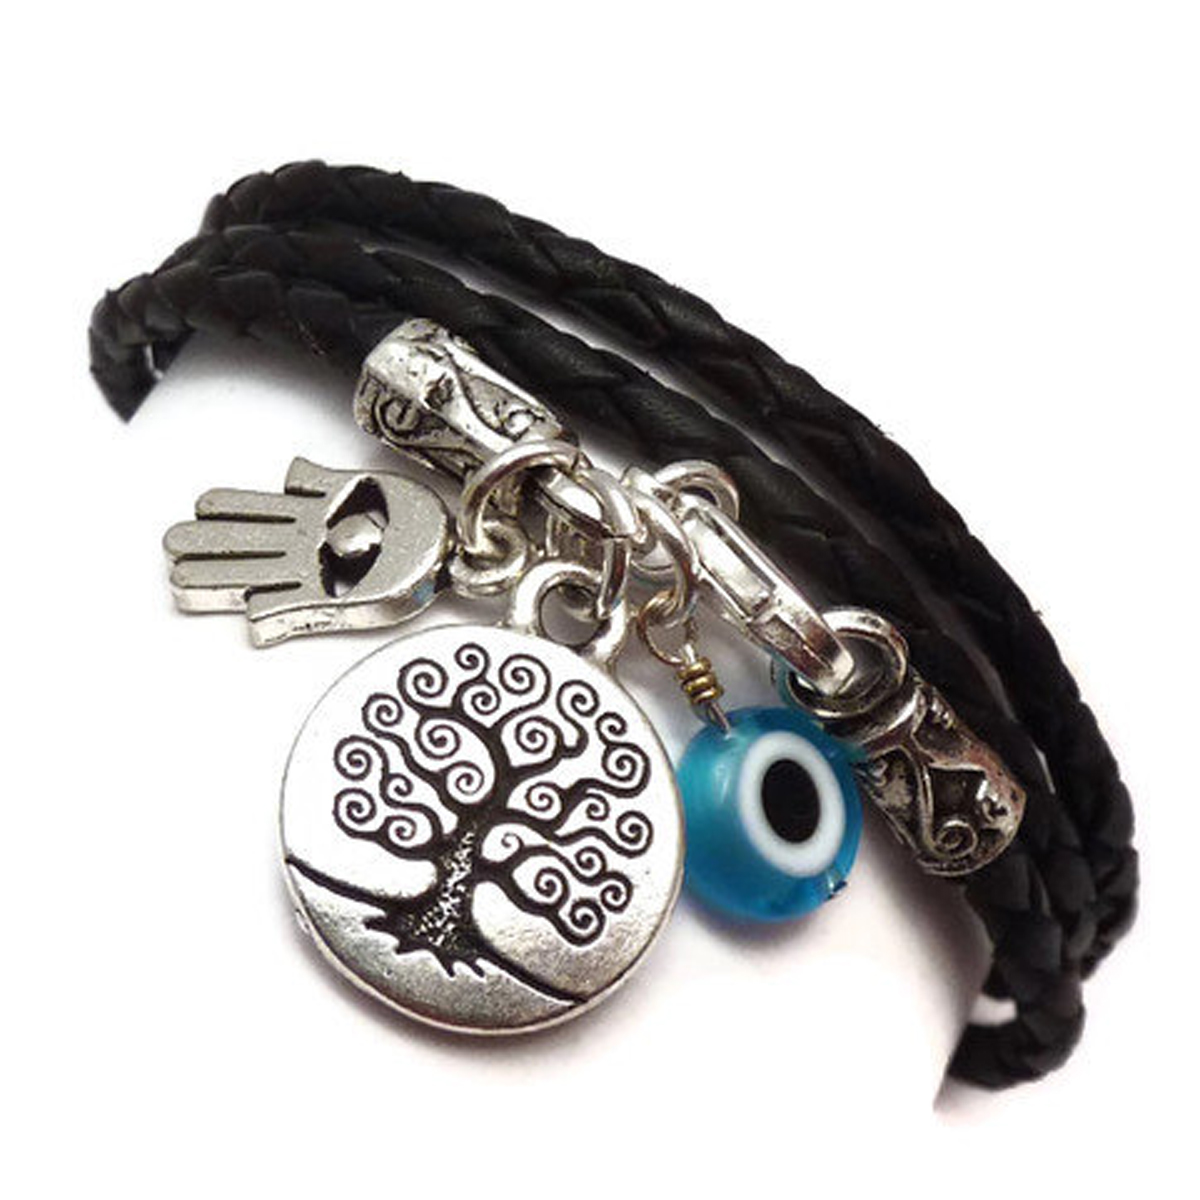 Leather Wrap Bracelet with Protection Charms